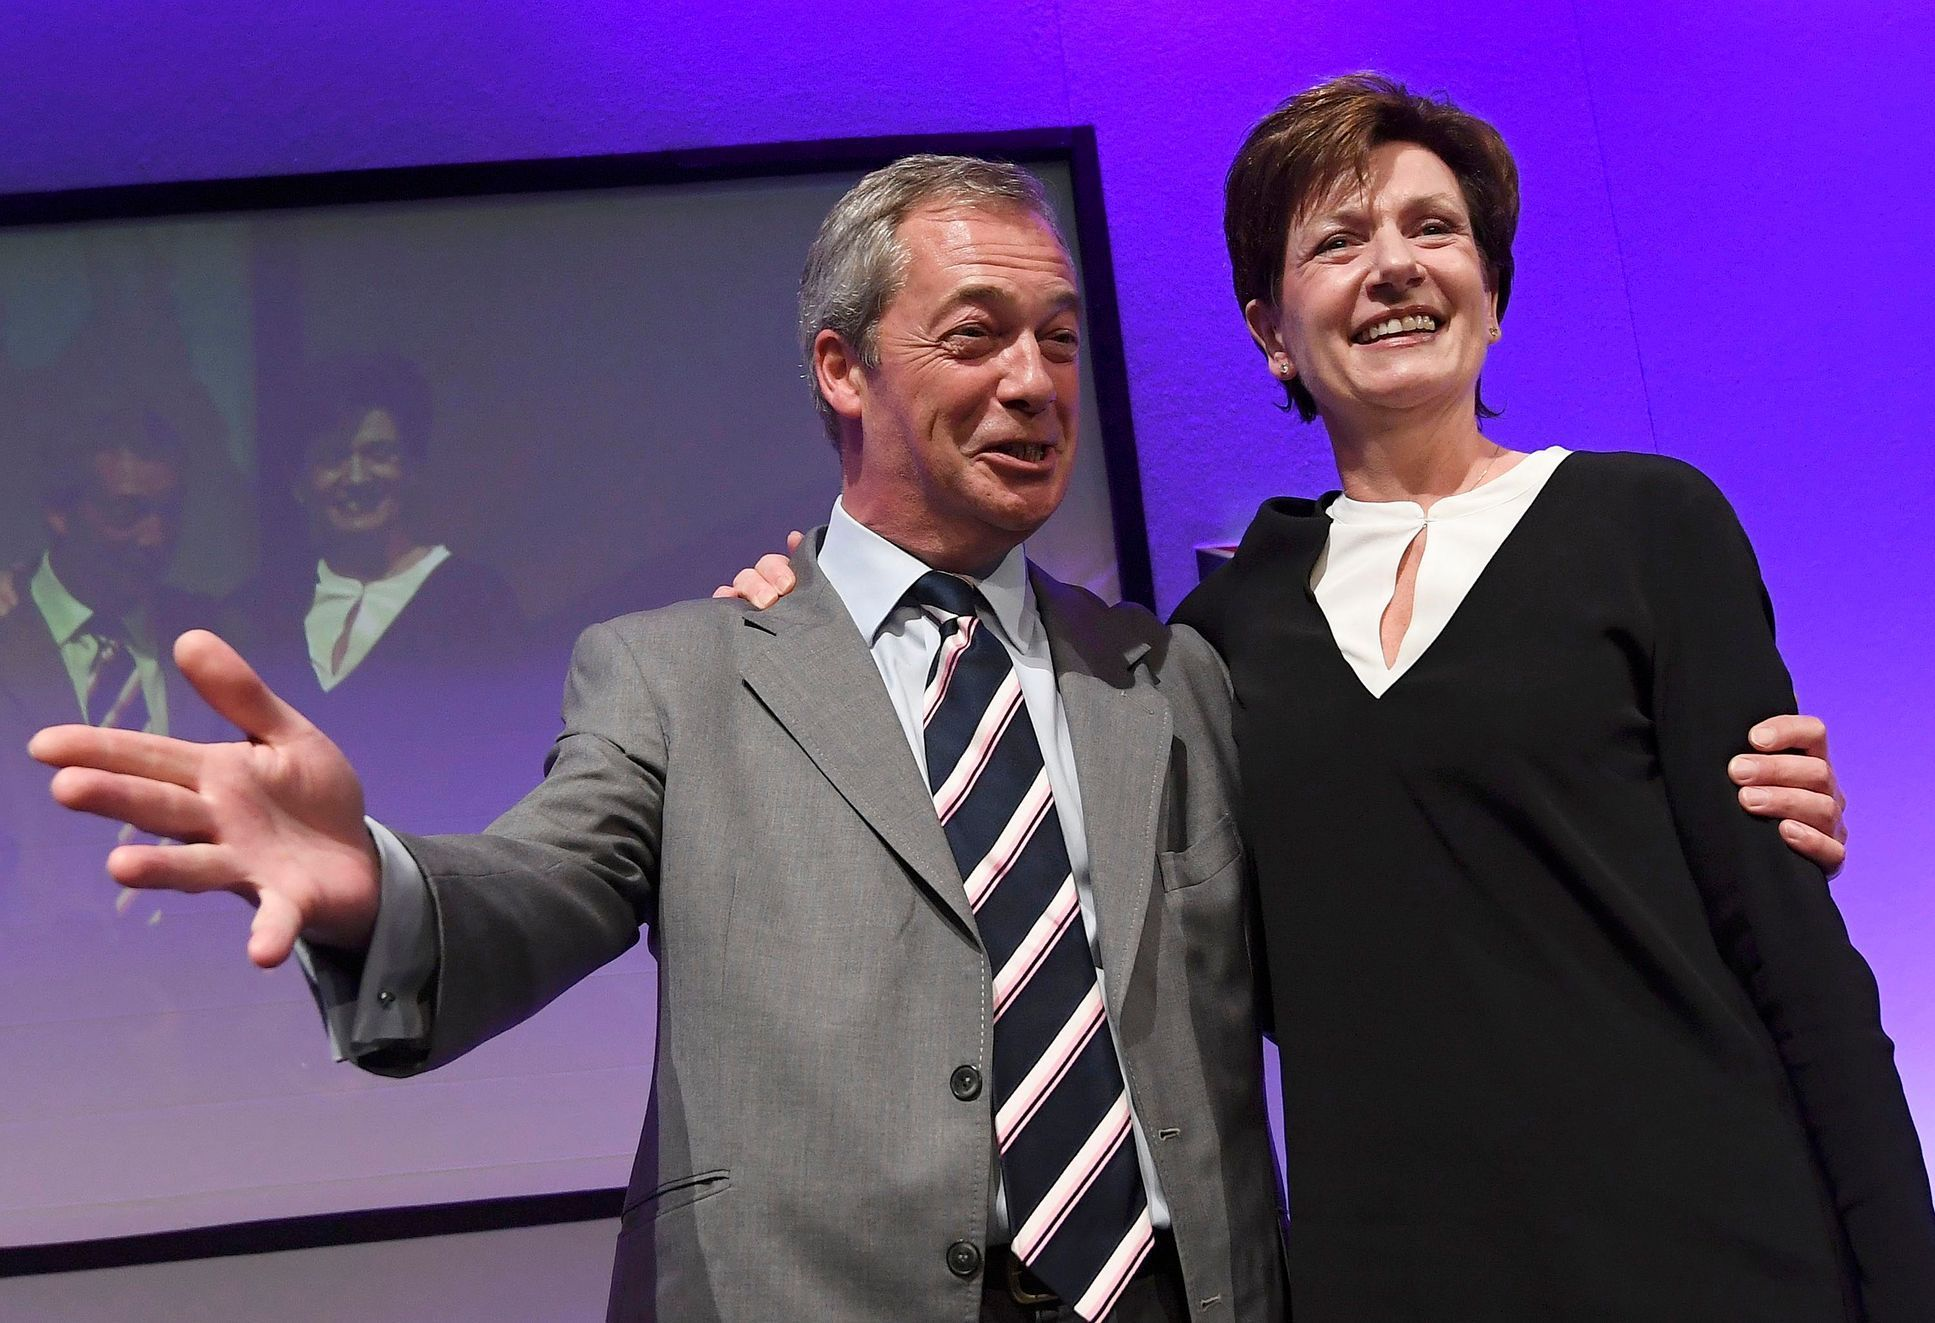 Diane Jamesová a Nigel Farage